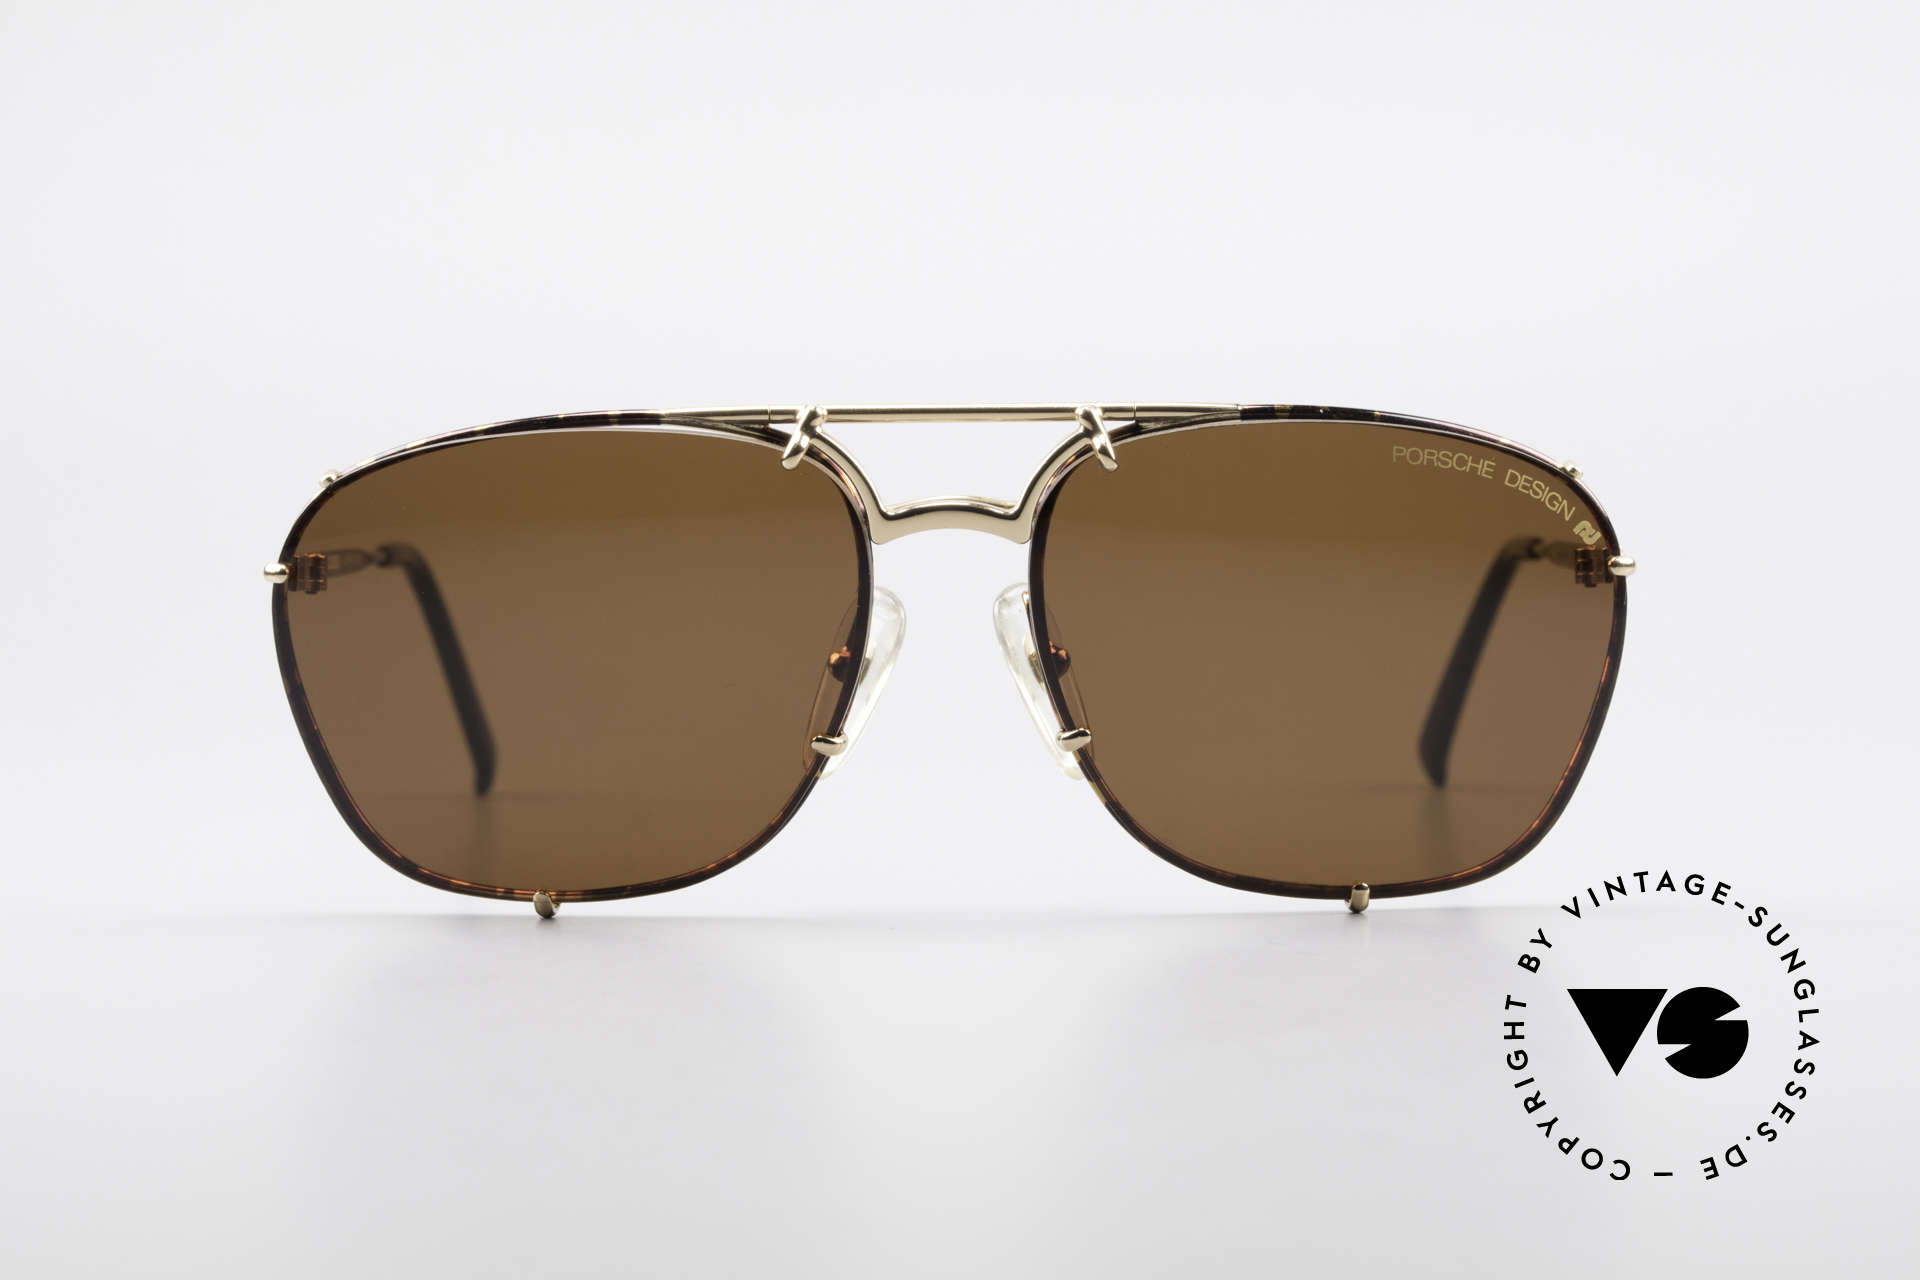 Porsche 5647 90s Classic Vintage Sunglasses, rare original from the early 1990's (made in Austria), Made for Men